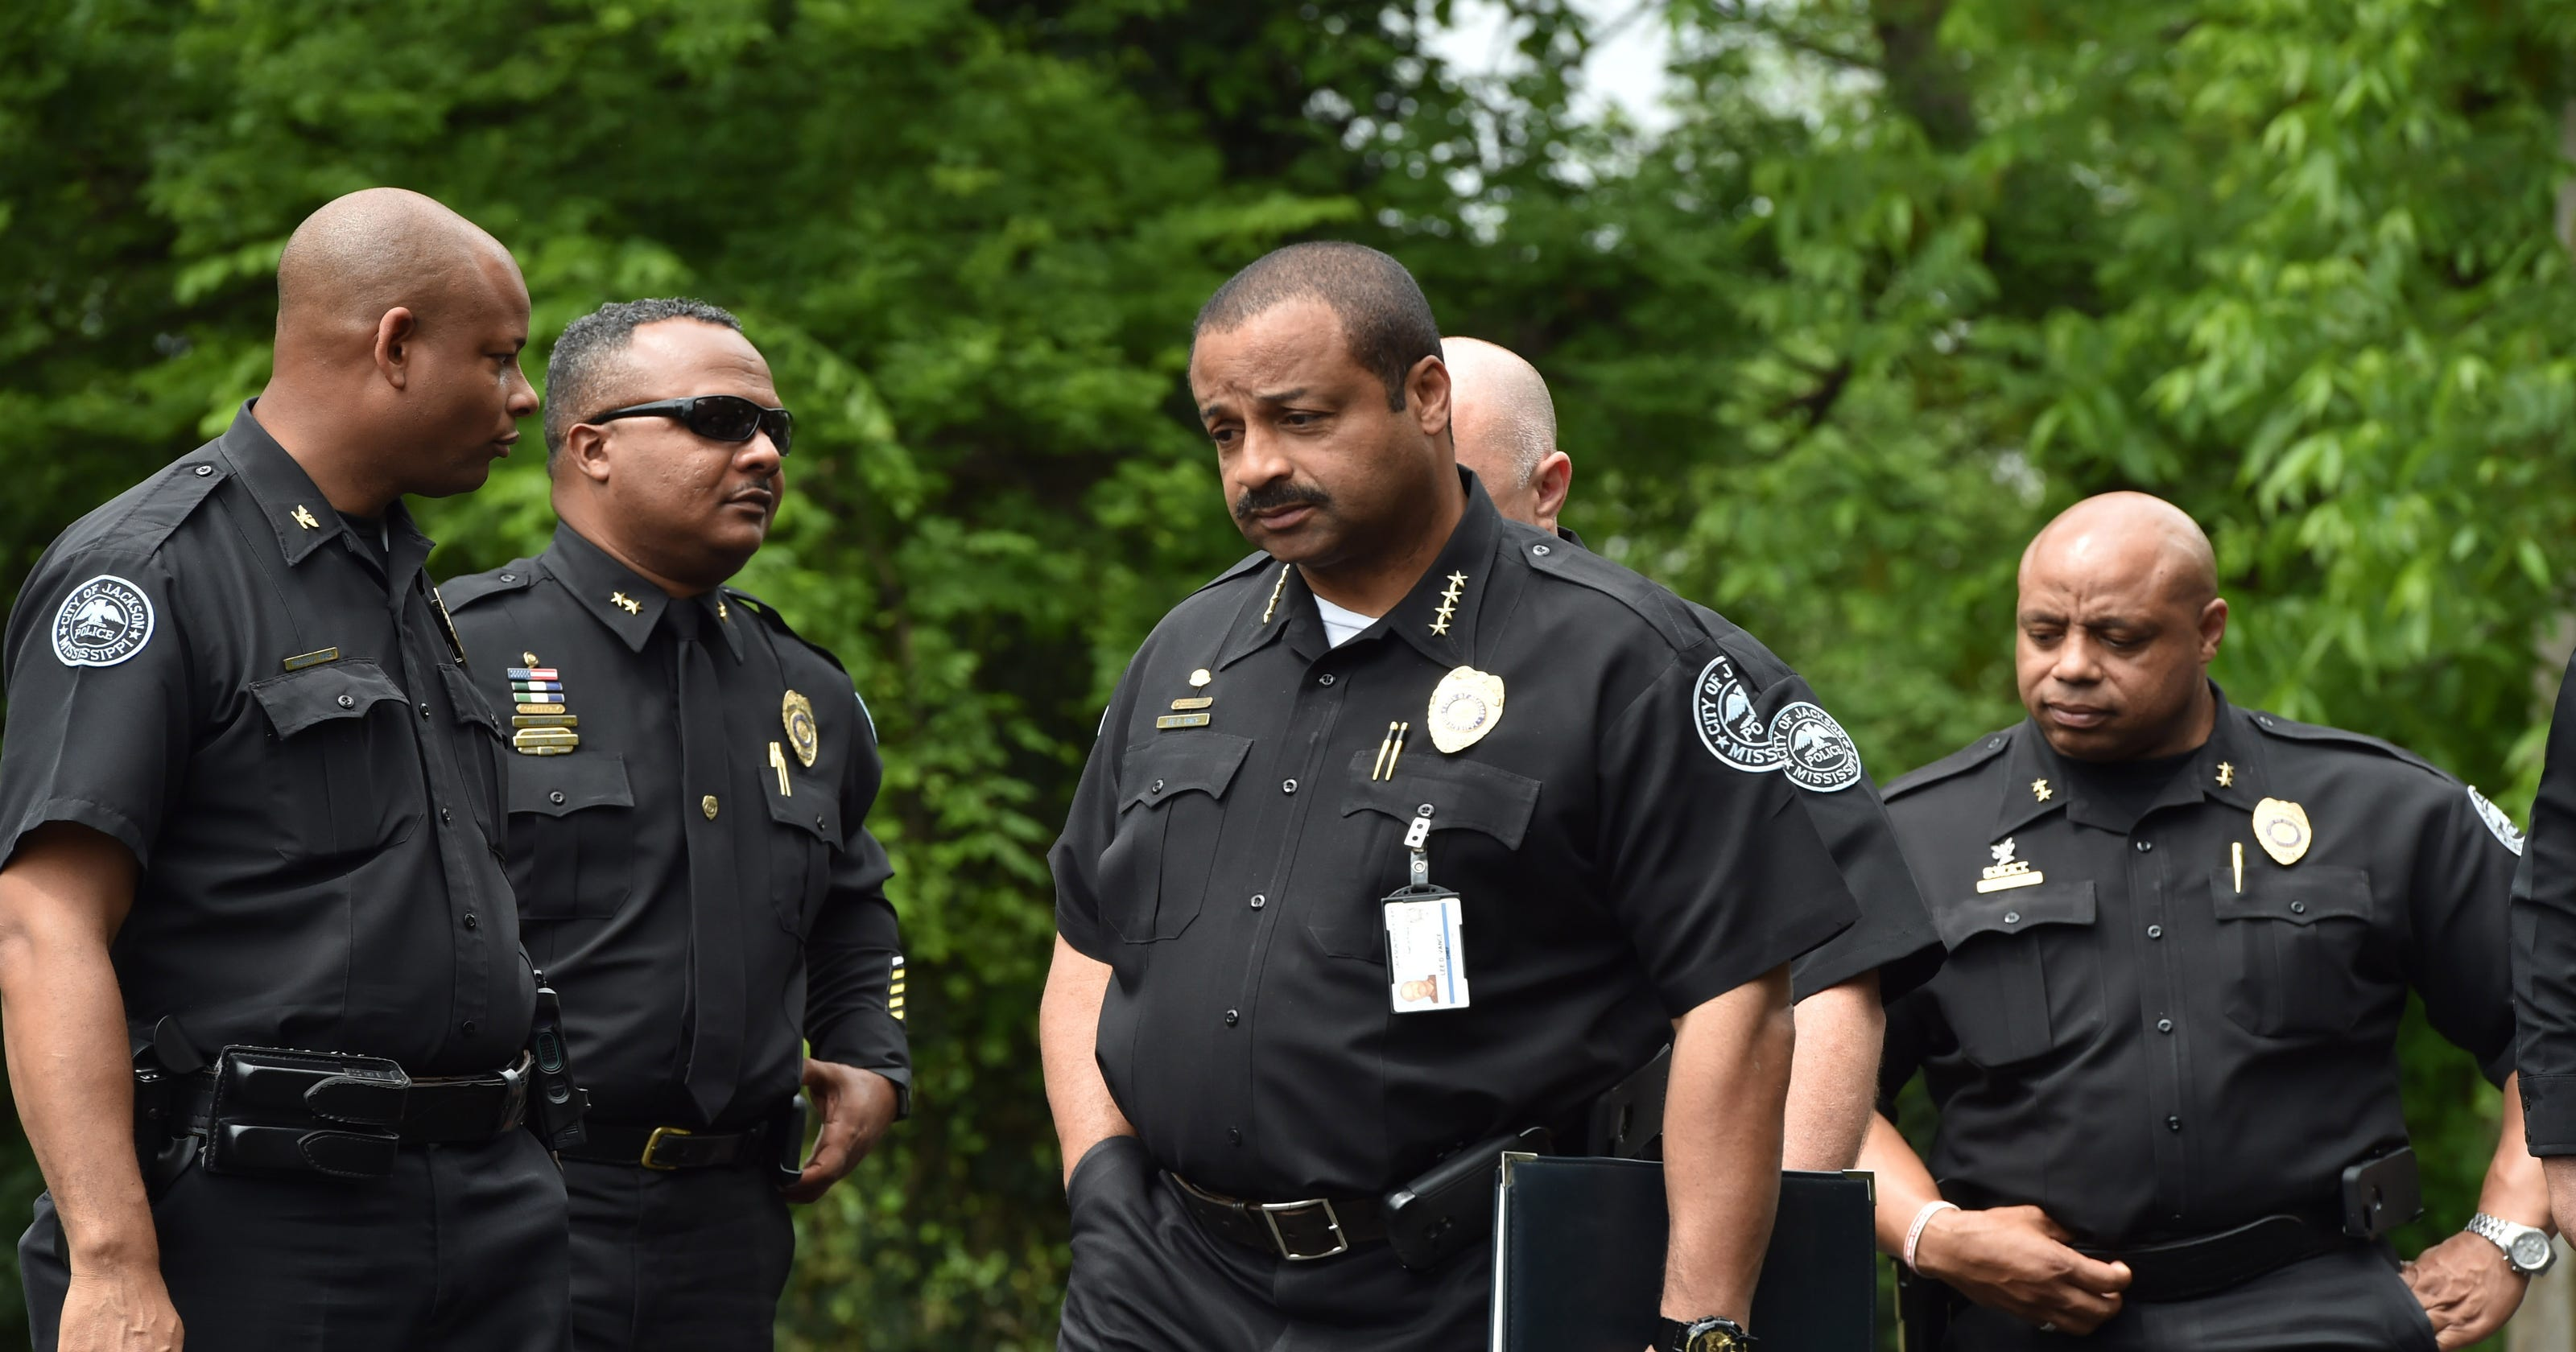 Jpd Facing Critical Officer Shortage Turns To Council For Help Senter Police Swat Mini Sj0021